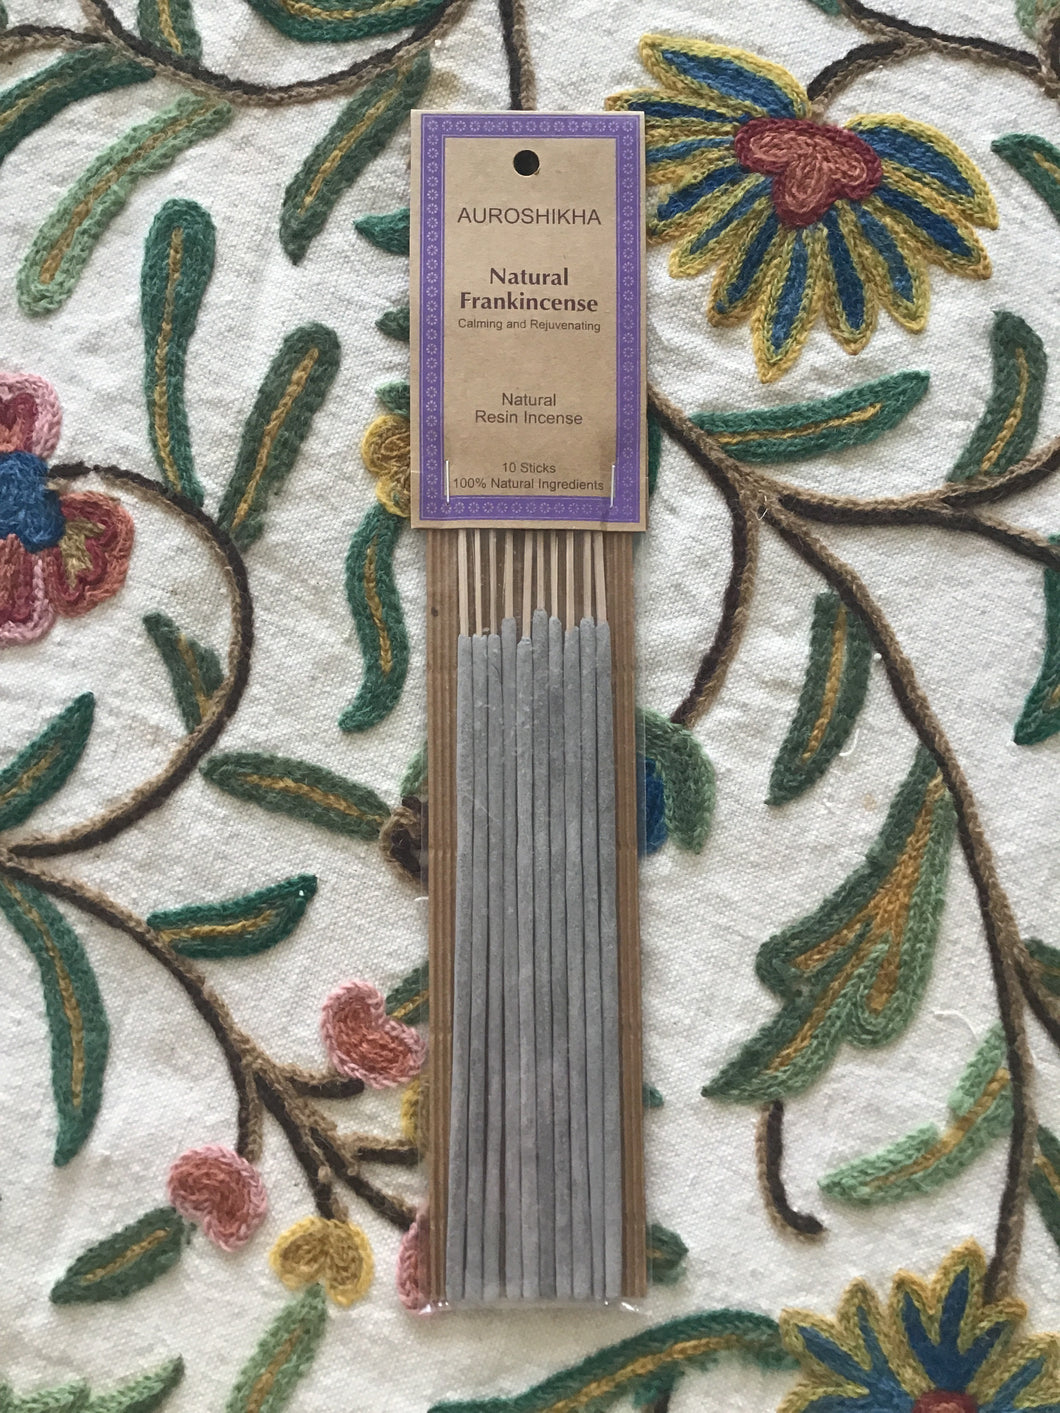 Auroshika Natural Frankincense Sticks